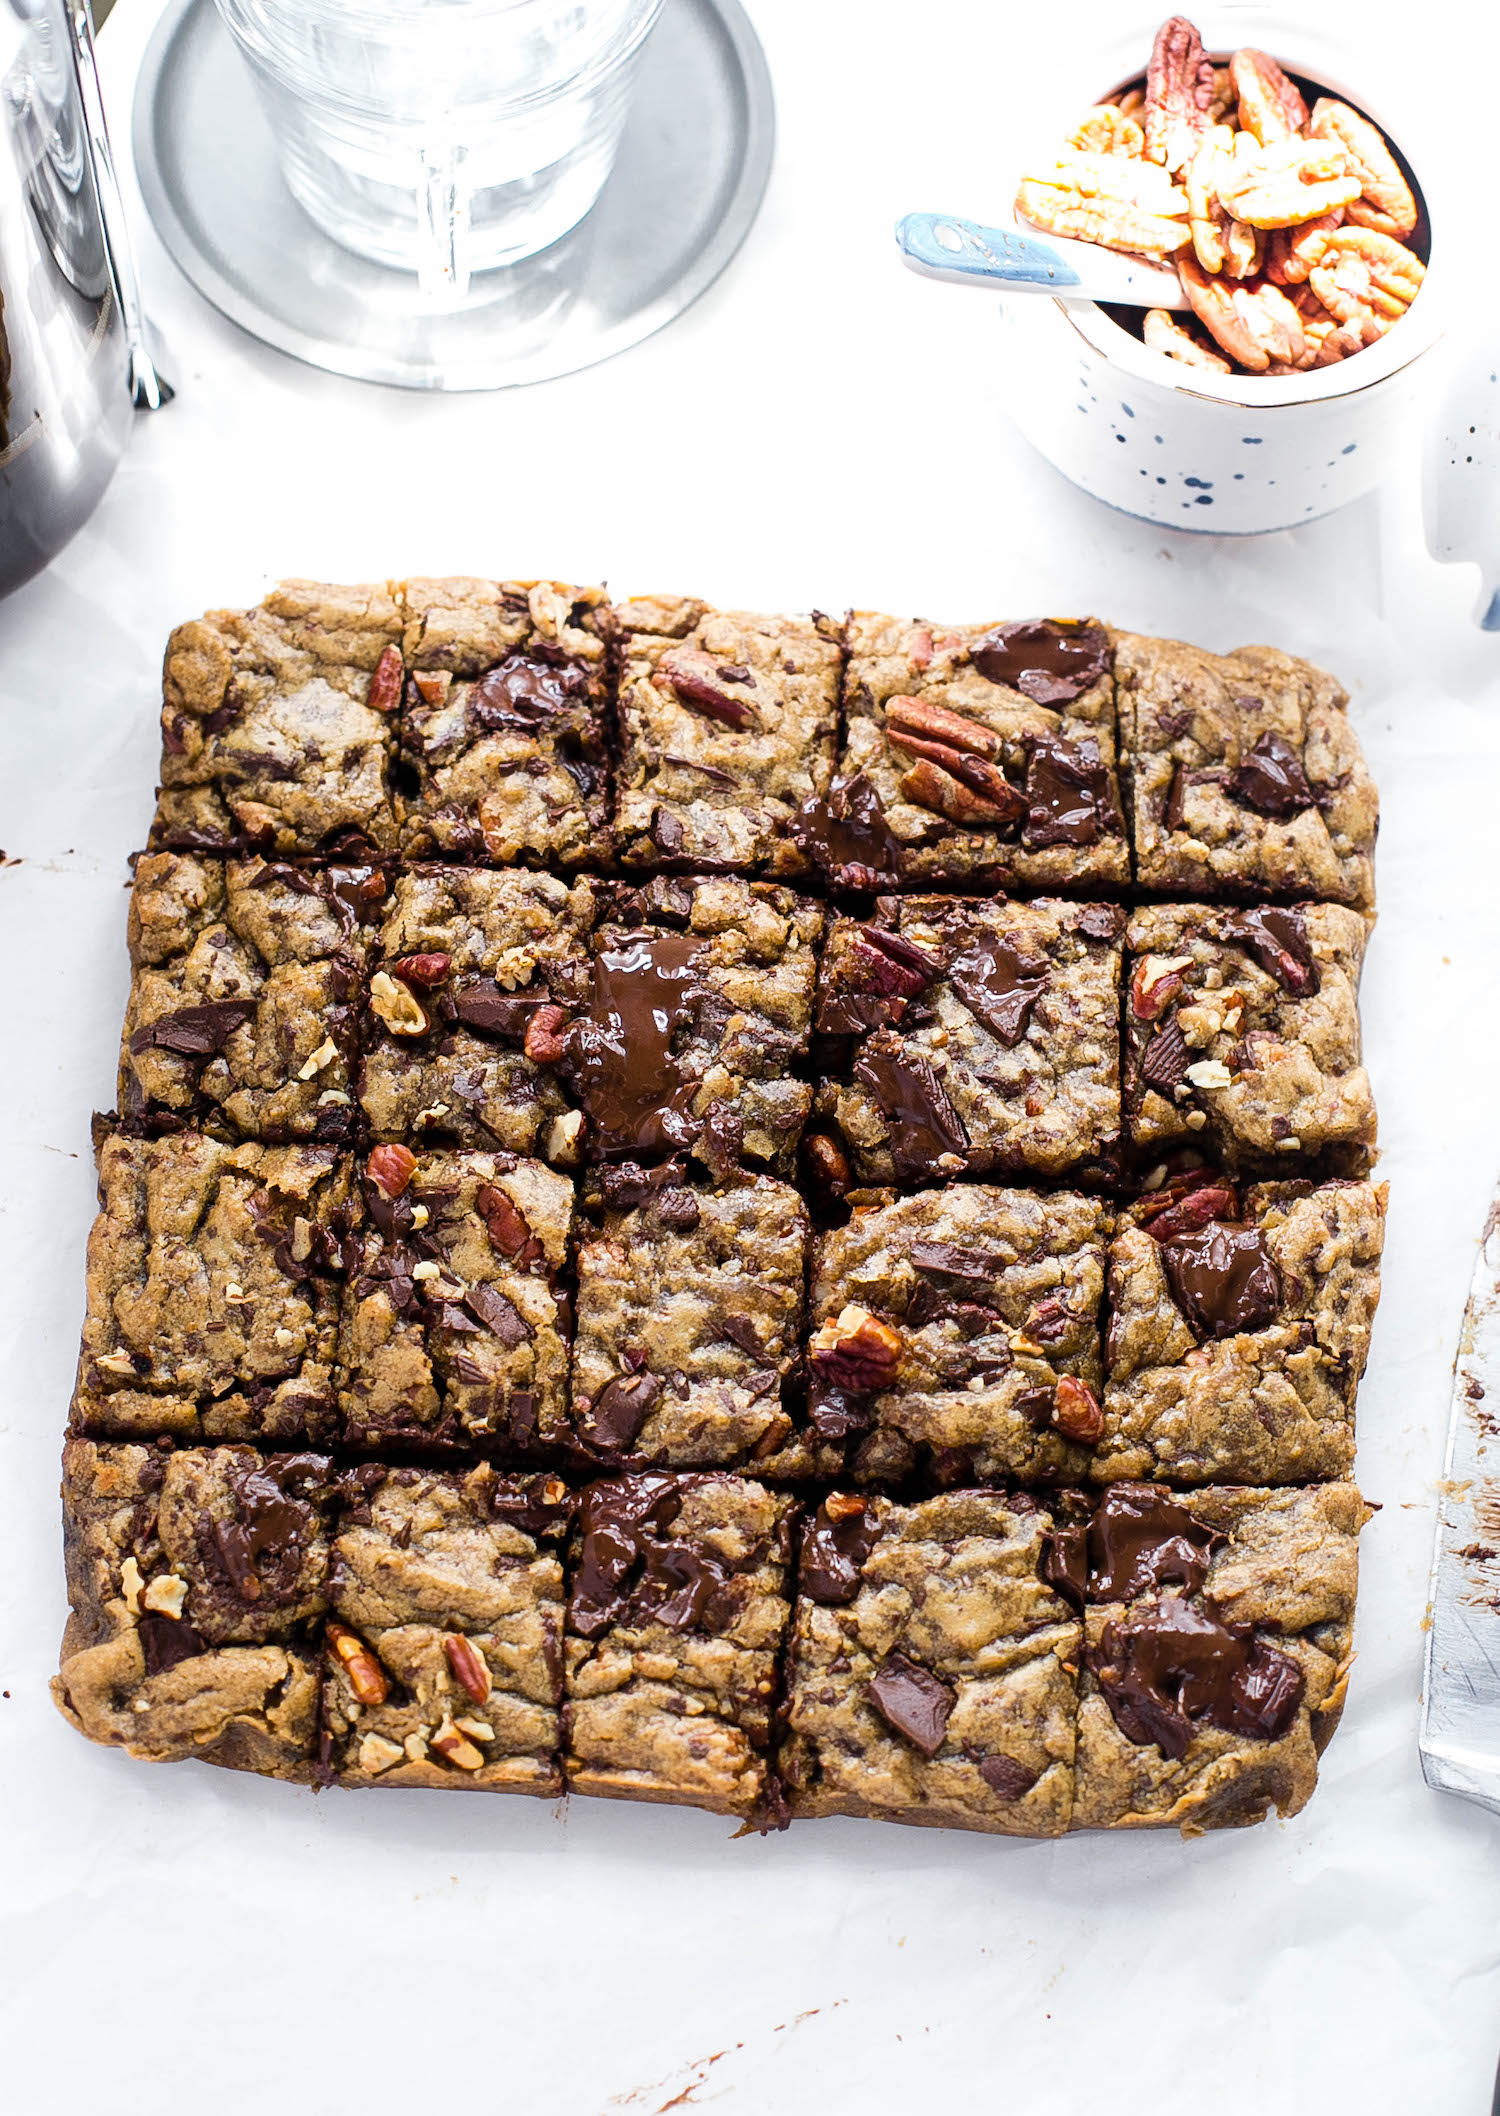 Espresso Chocolate Chip Pecan Blondies: soft, gooey, rich blondies packed with espresso flavor, chocolate chunks, and toasted pecans. So easy!   TrufflesandTrends.com